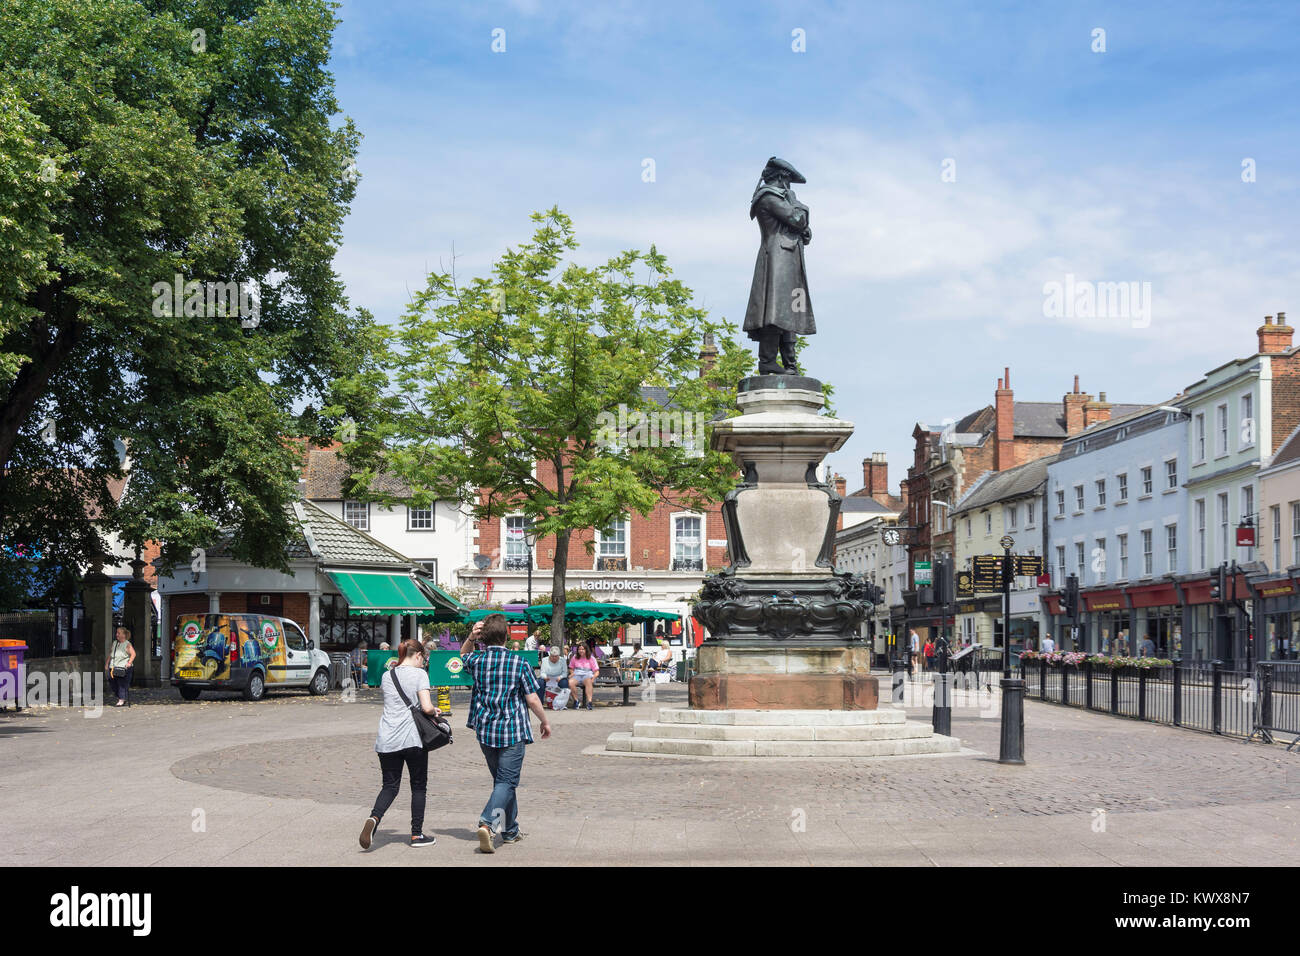 St Paul's Square, Bedford, Bedfordshire, England, United Kingdom - Stock Image